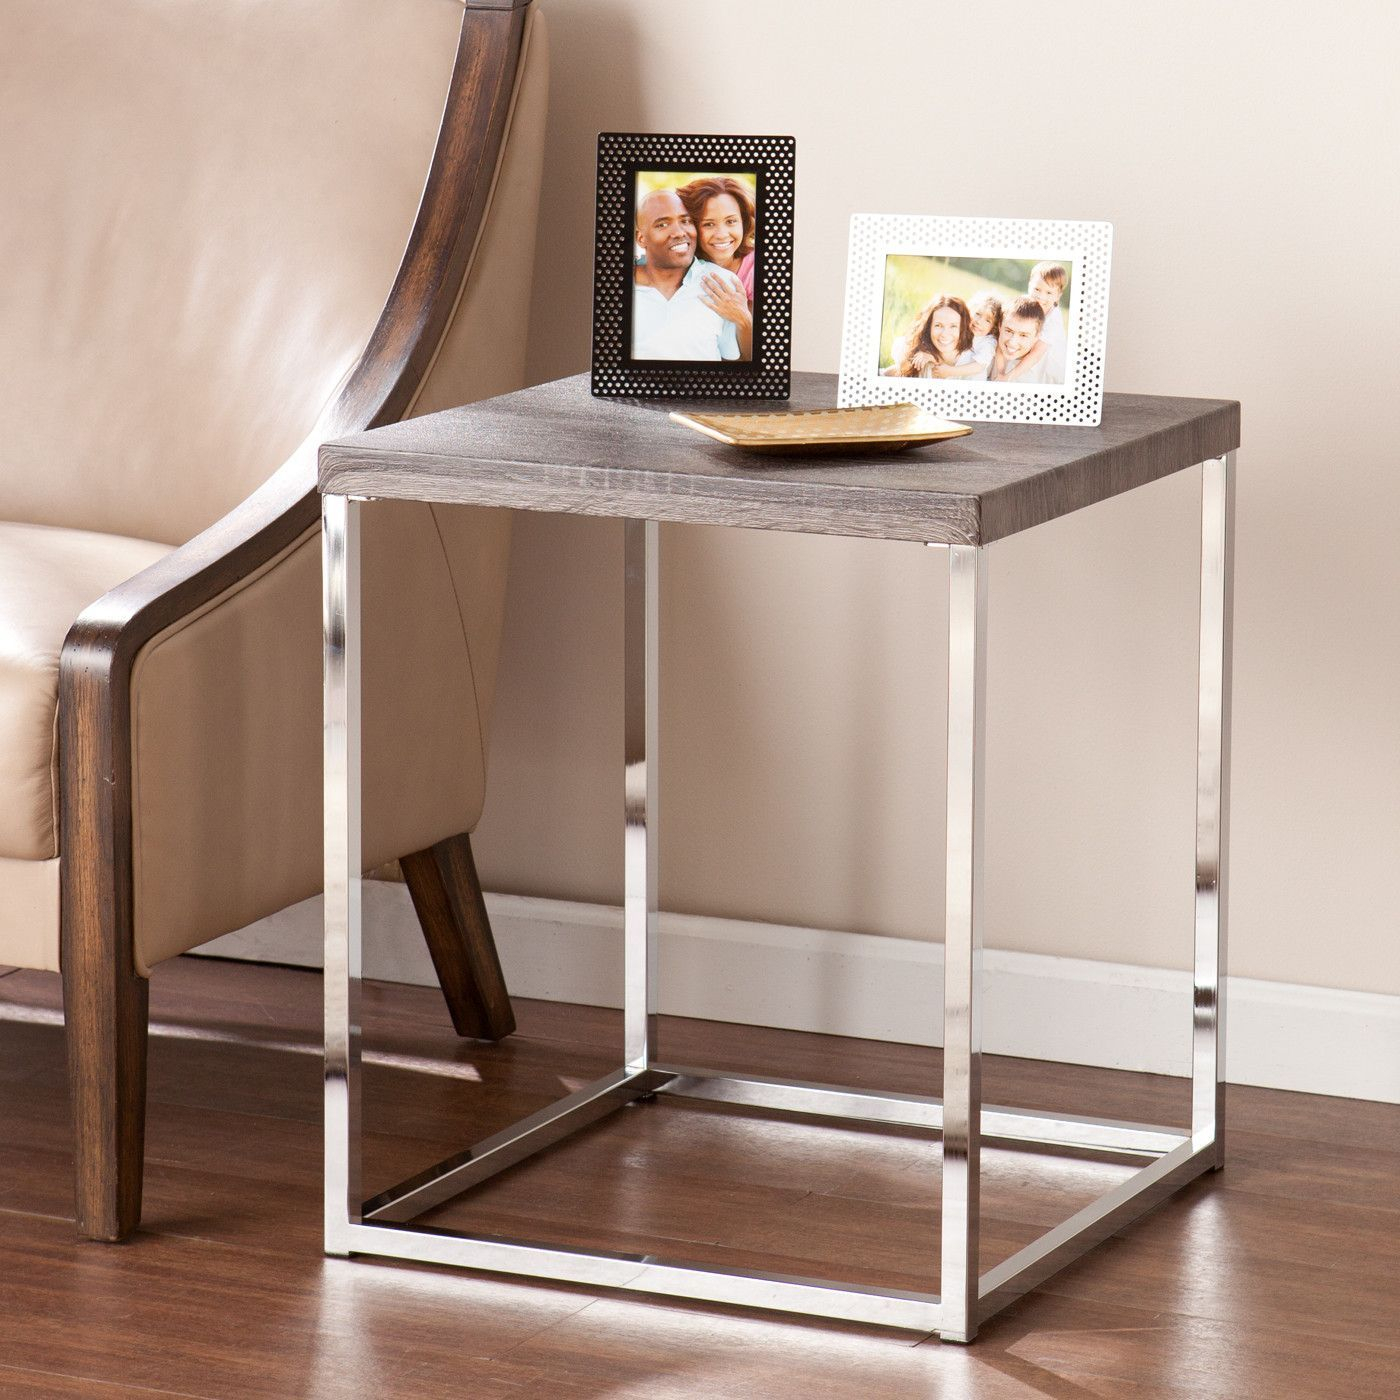 Gellar End Table | Products | Pinterest | Products Inside Era Limestone Console Tables (View 6 of 30)